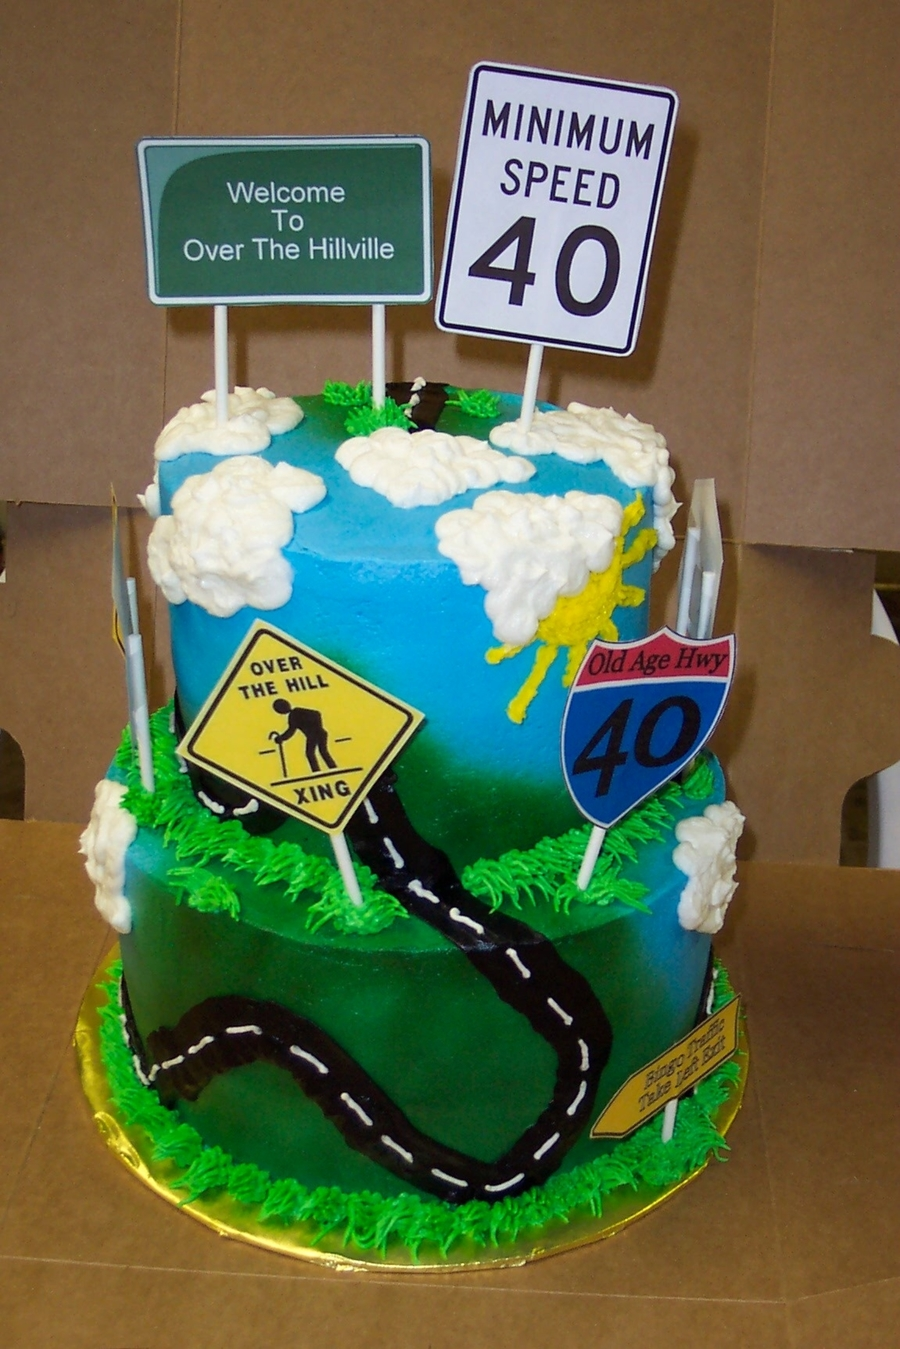 Over The Hill Cake - CakeCentral.com